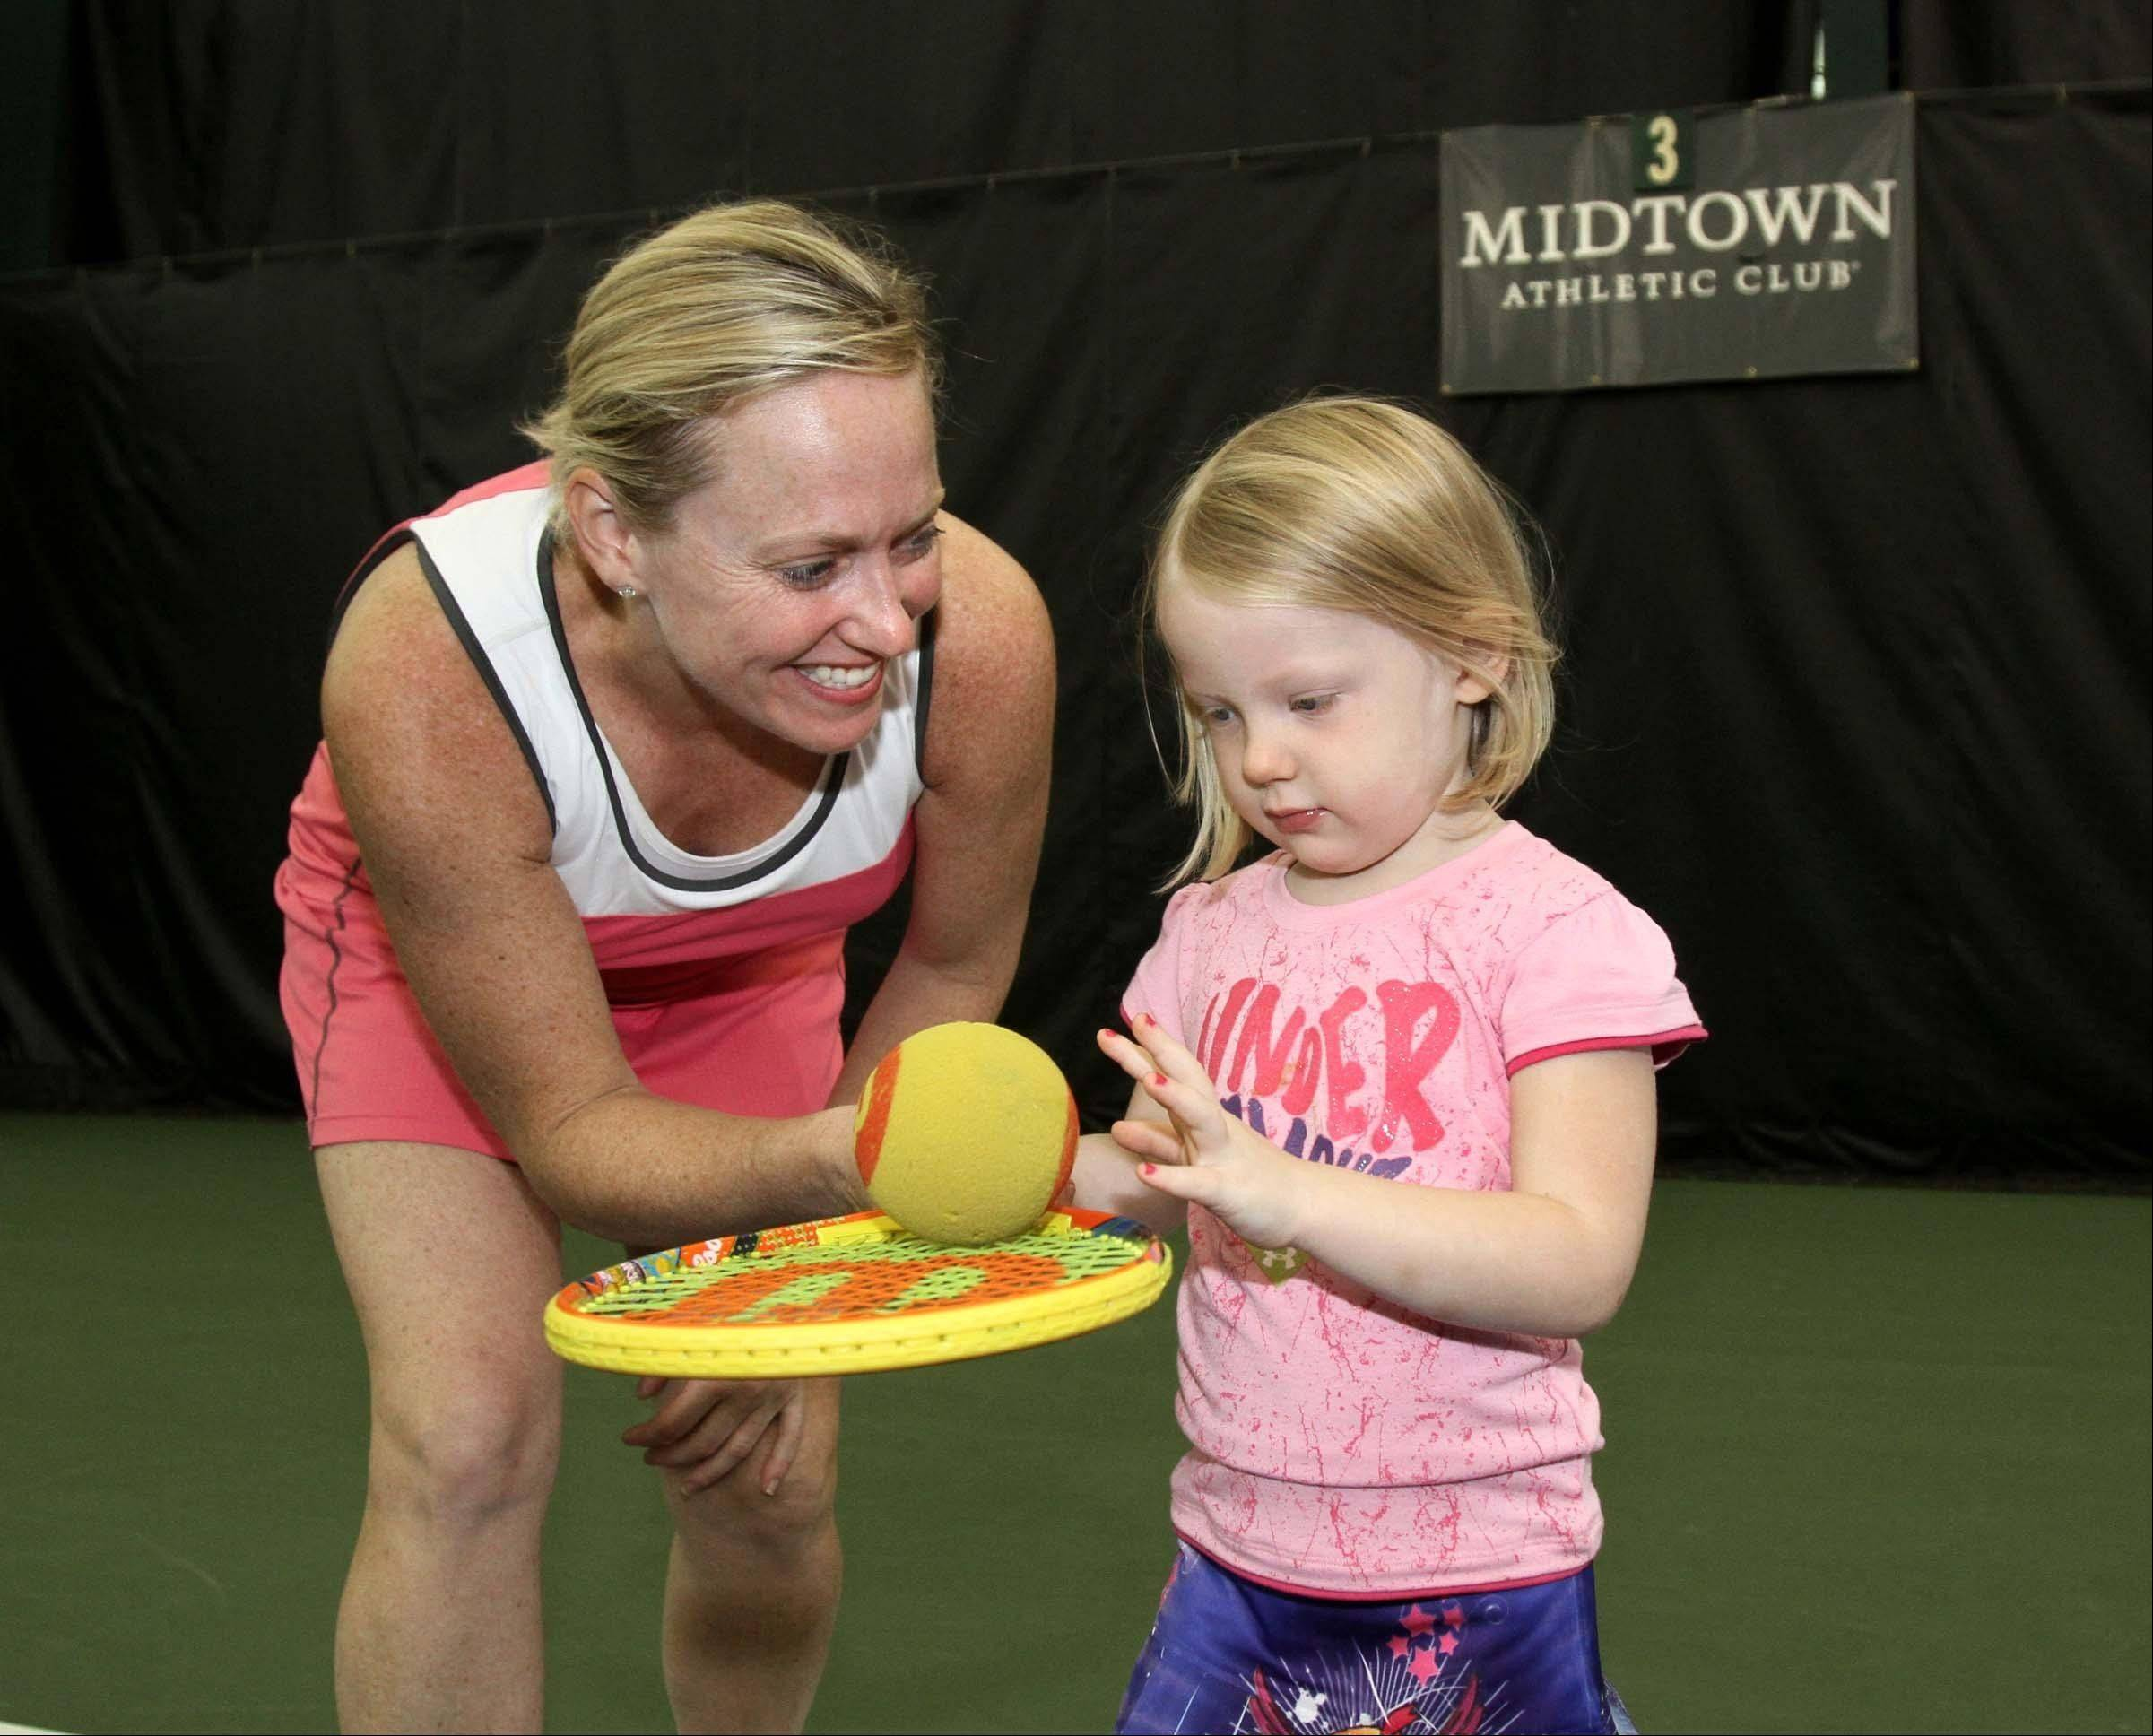 Johanna Croll of Barrington and her 3-year-old daughter Courtney take part in Midtown Athletic Club's toddler tennis program, Tennis Explorers.